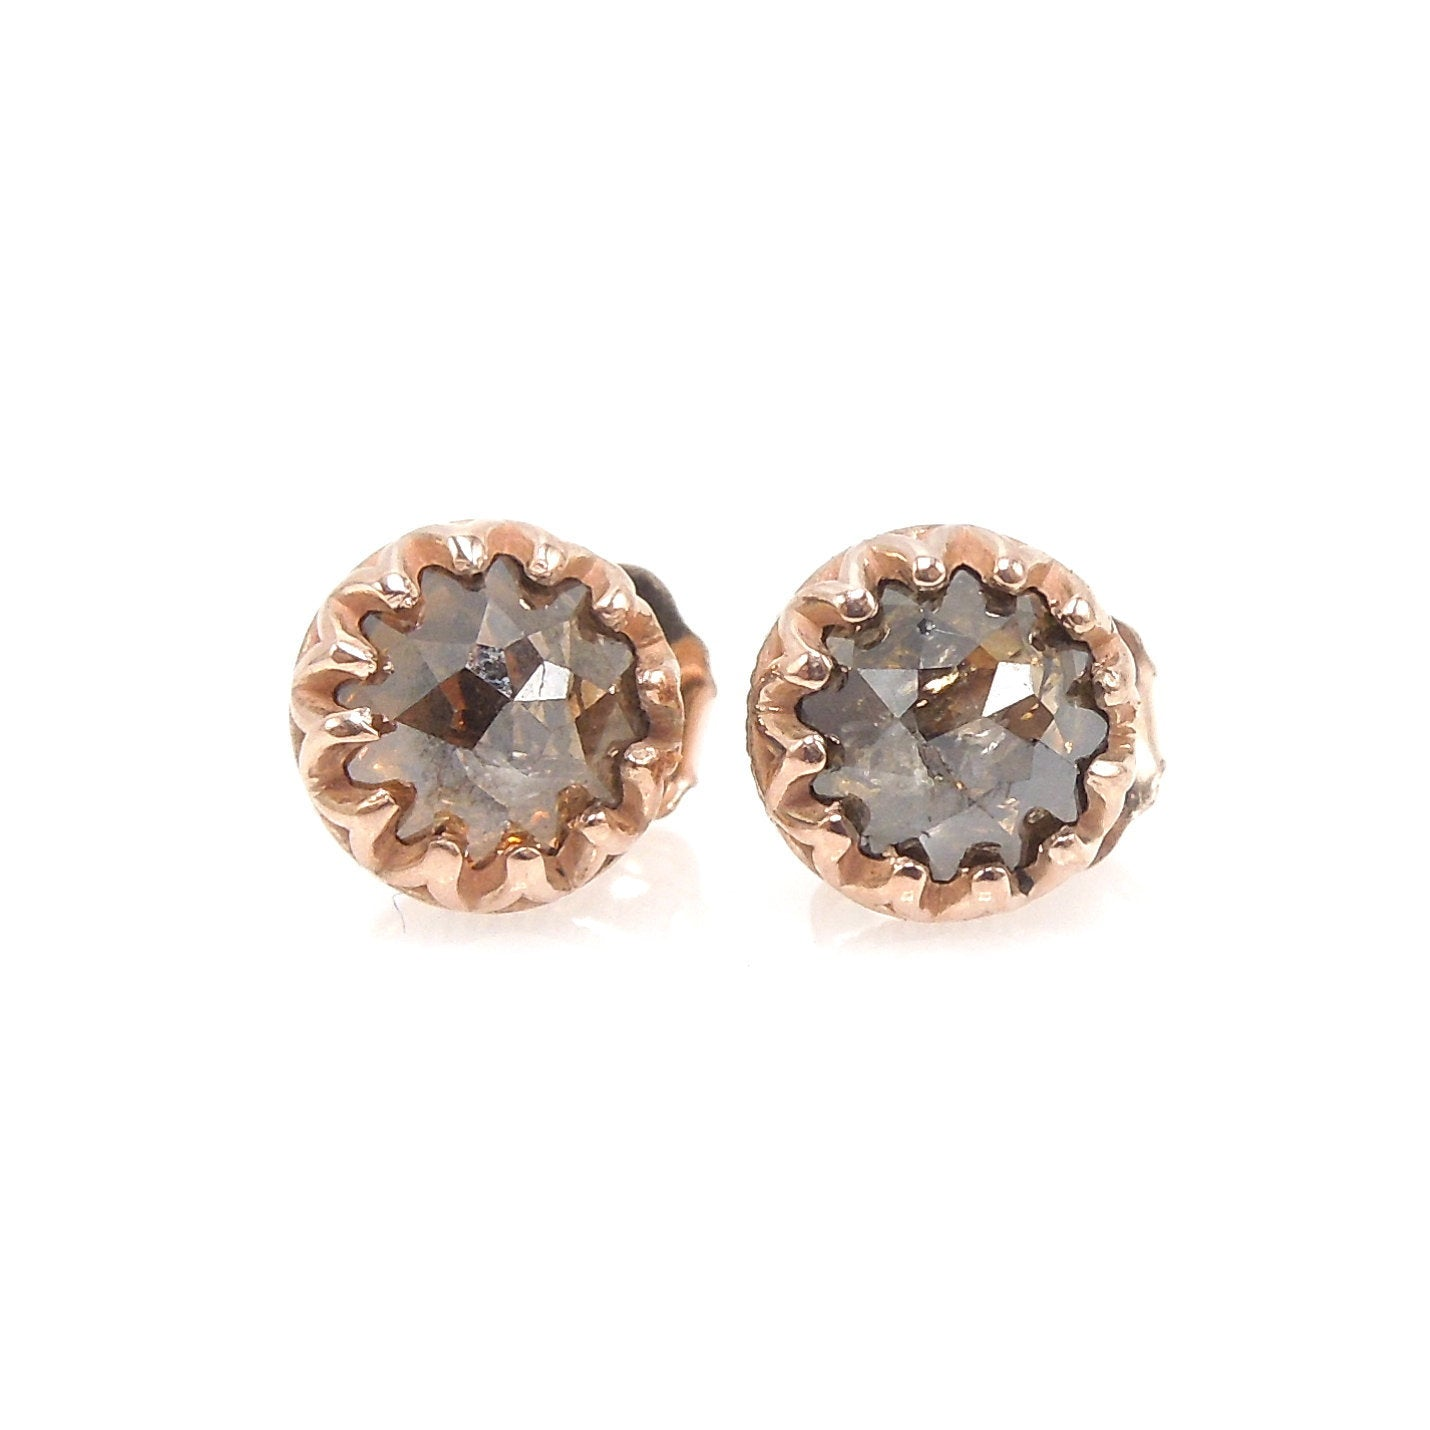 Brown Salt And Pepper Rose Cut Diamond Stud Earrings In Rose Gold A J Martin